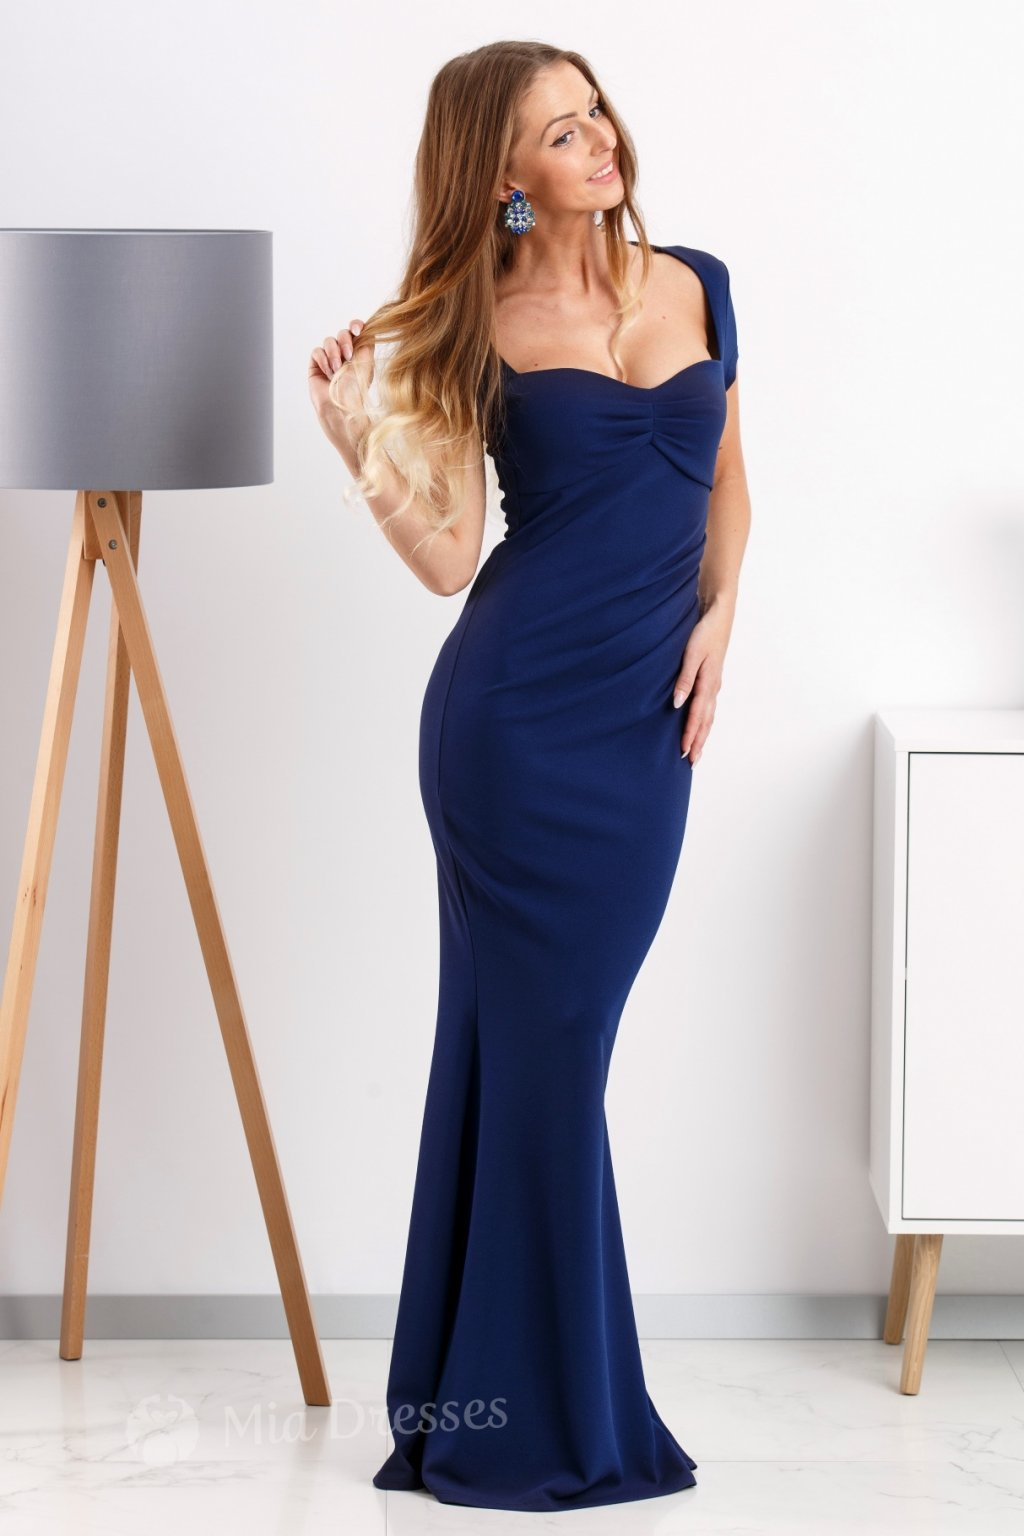 Dark blue formal dress with cut neckline